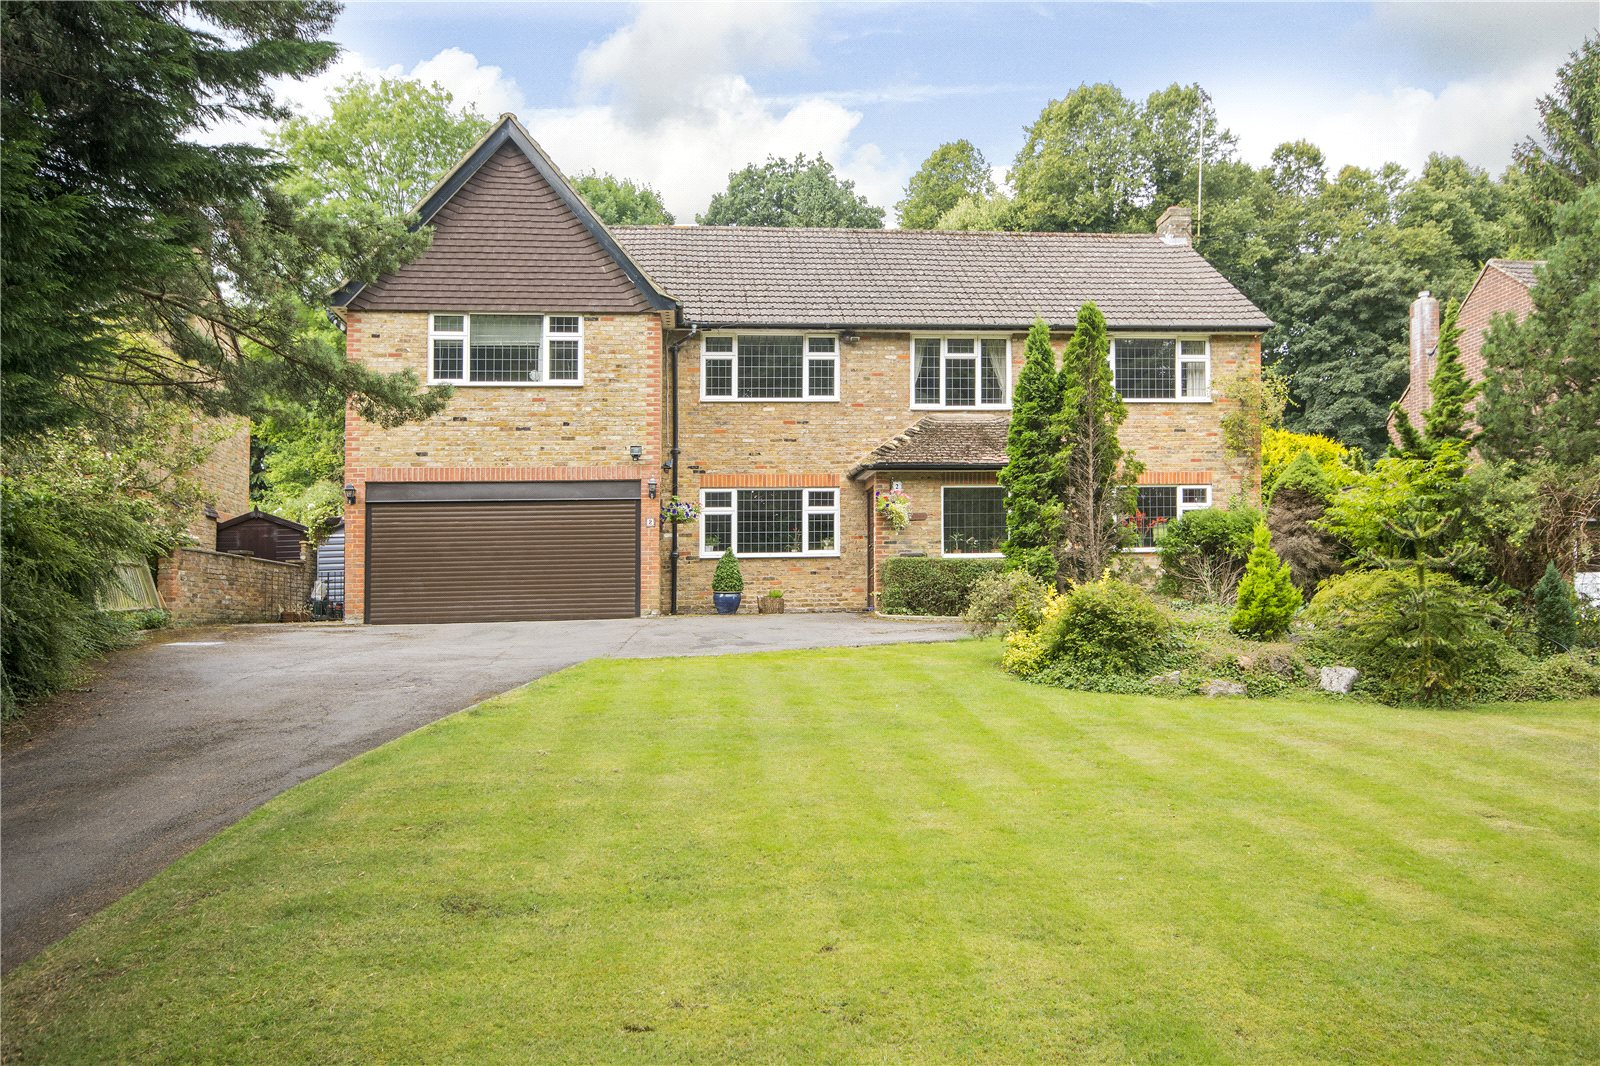 Casa Unifamiliar por un Venta en Claydon End, Chalfont St Peter, Gerrards Cross, Buckinghamshire, SL9 Gerrards Cross, Inglaterra